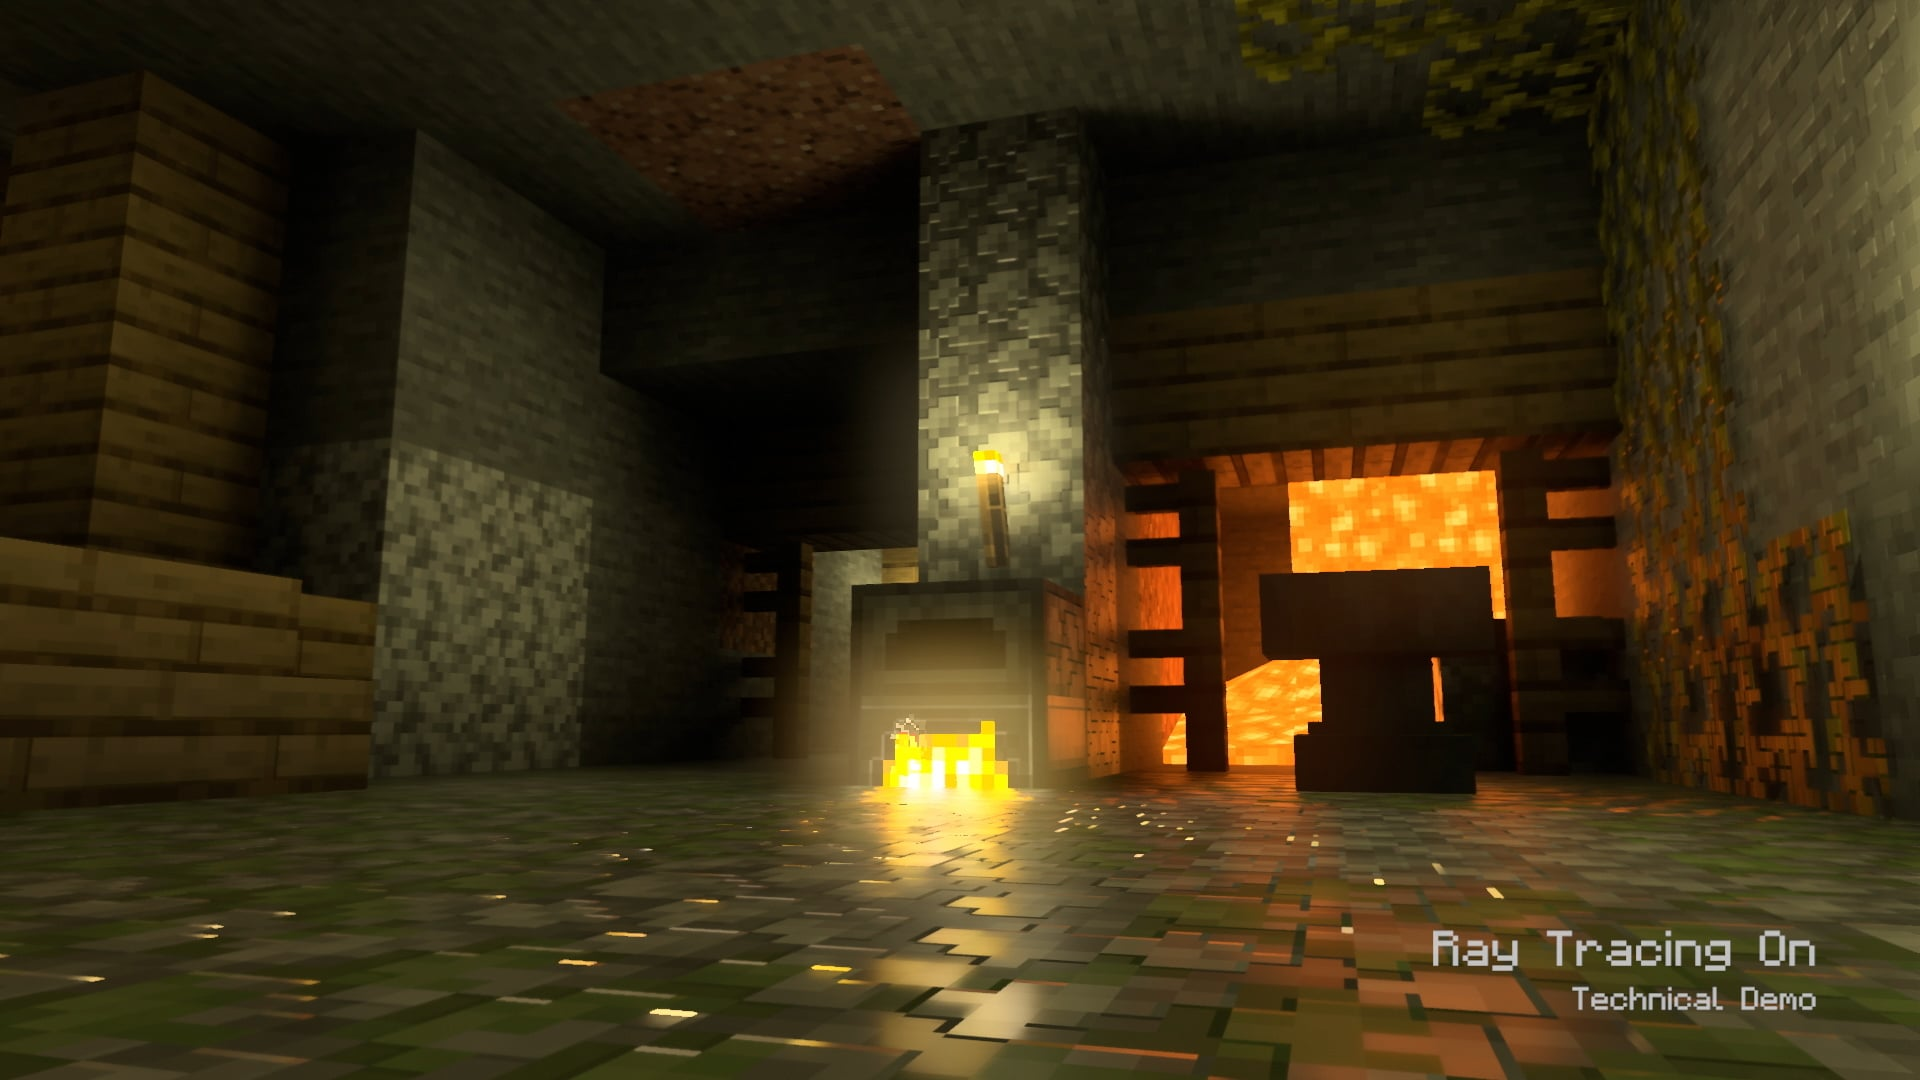 Xbox One Series X: Minecraft demo, raytracing on